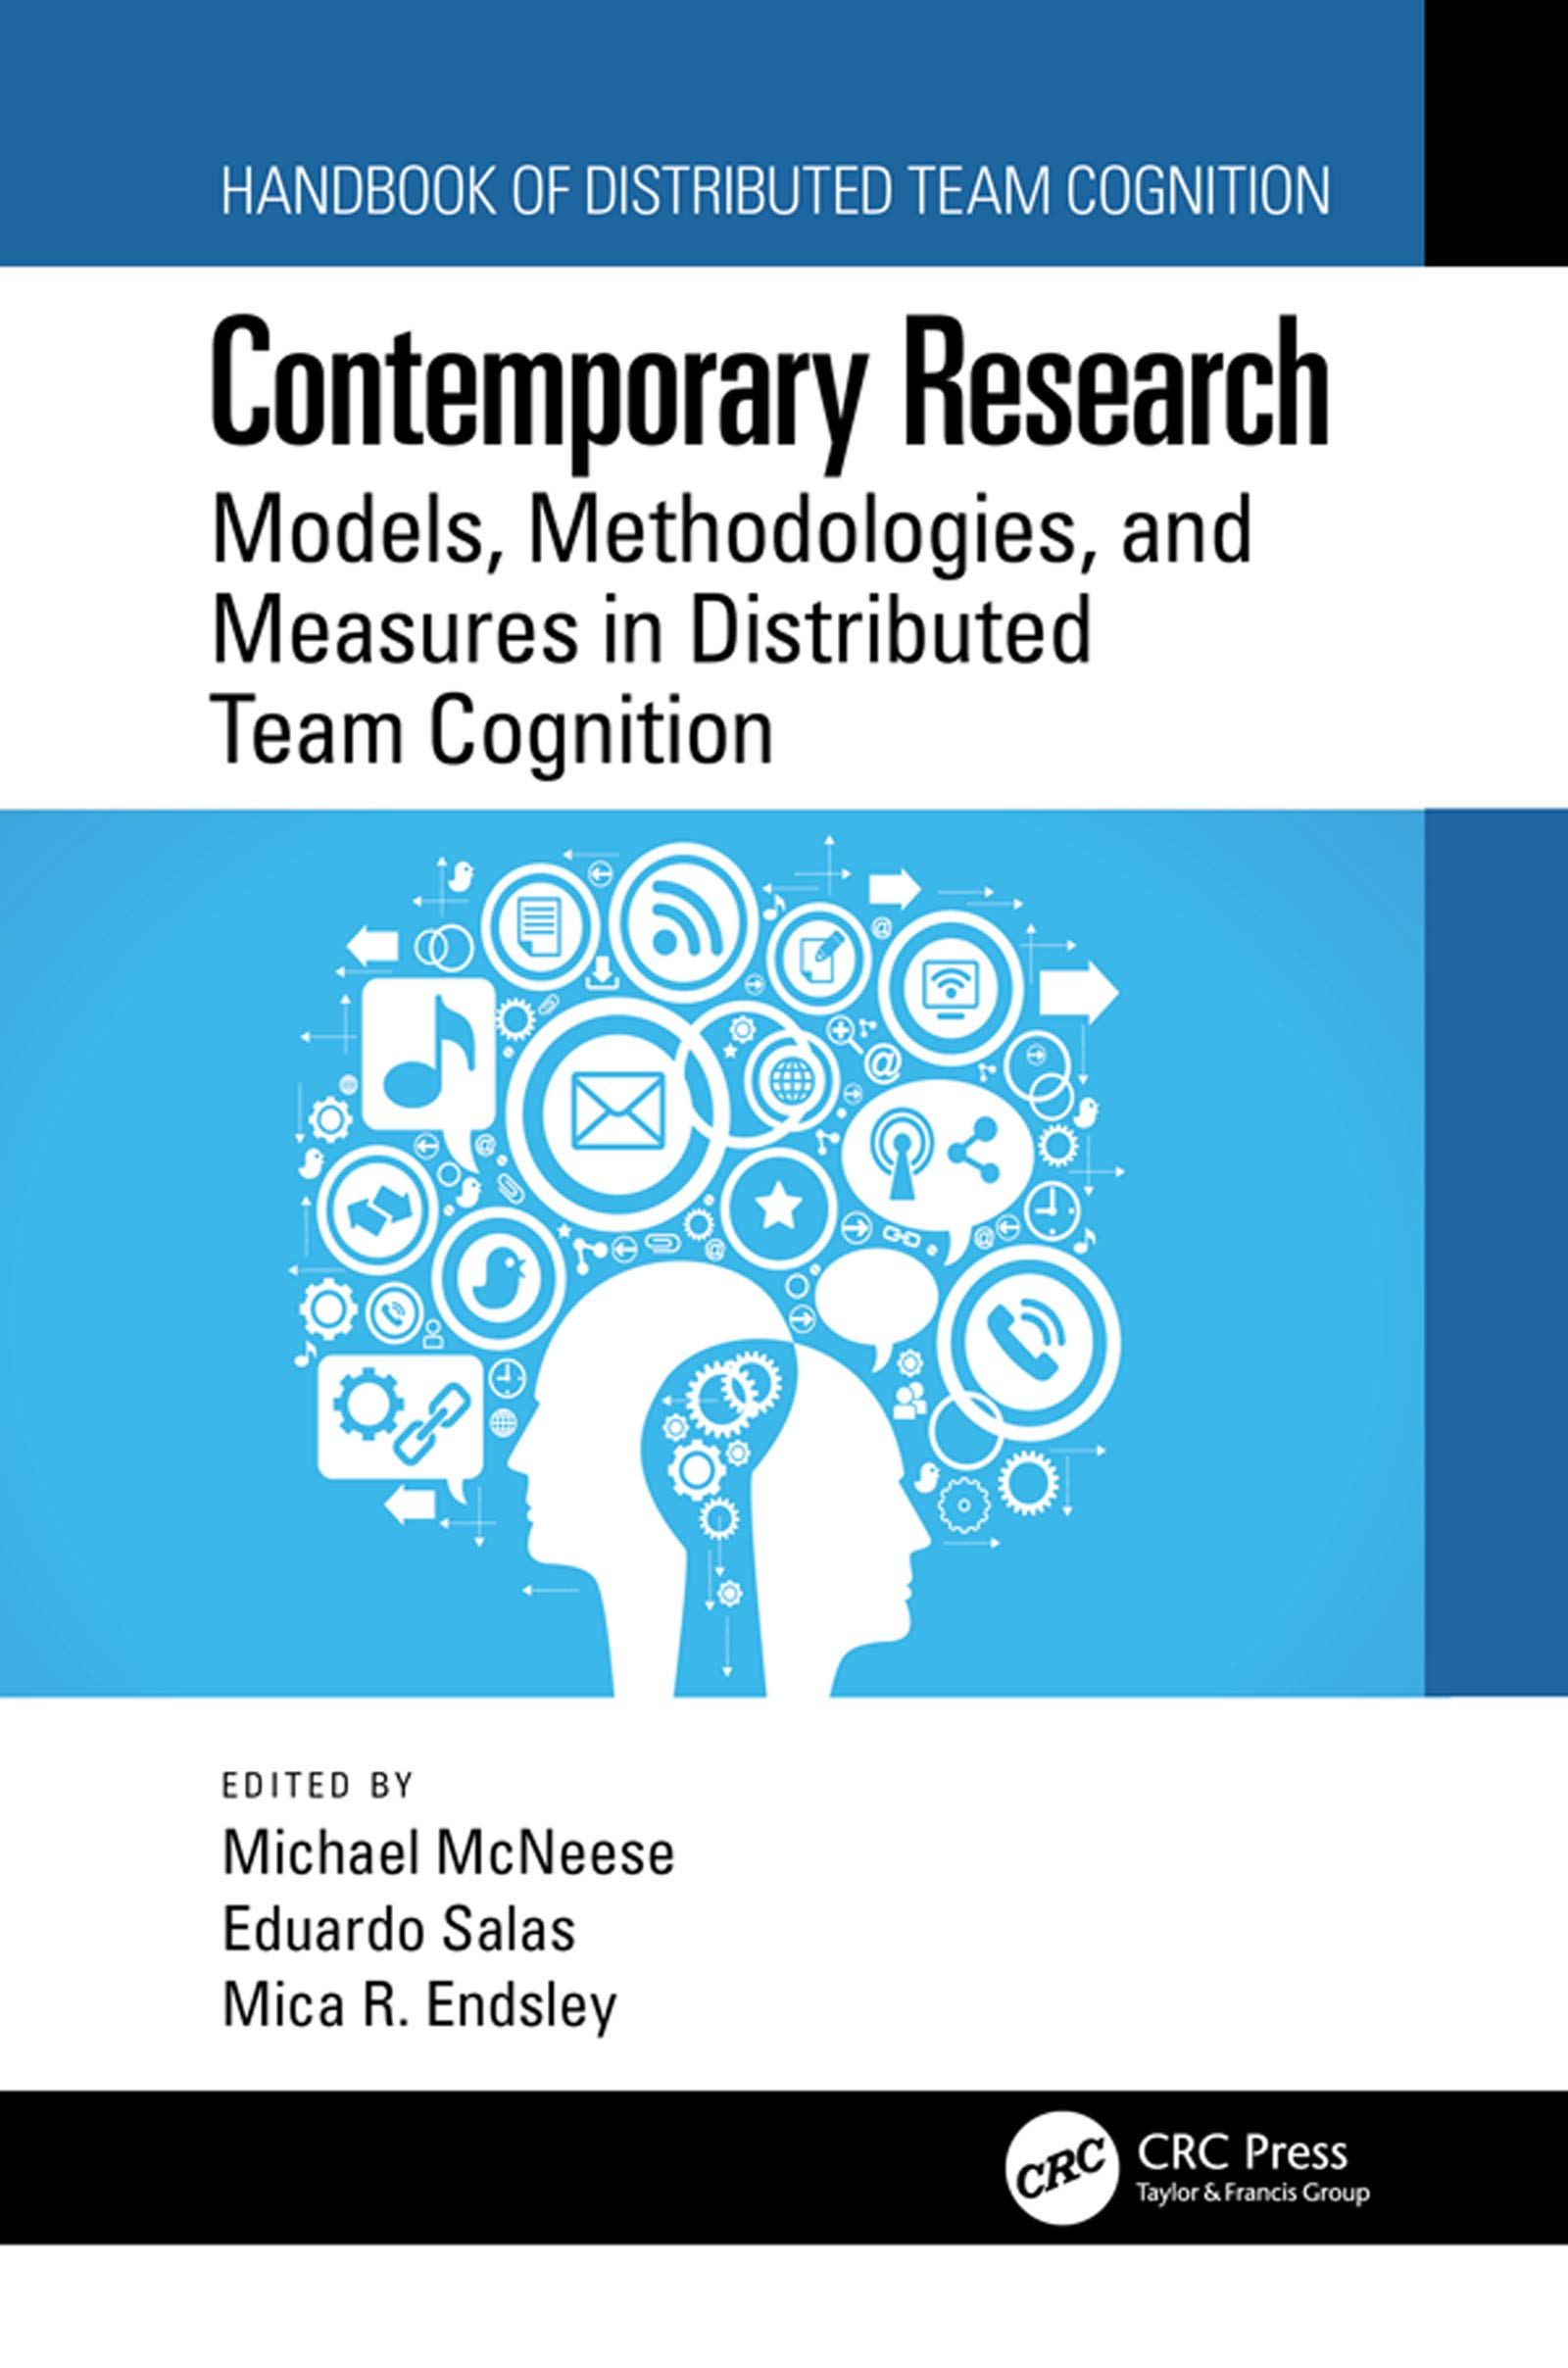 Contemporary Research: Models, Methodologies, and Measures in Distributed Team Cognition